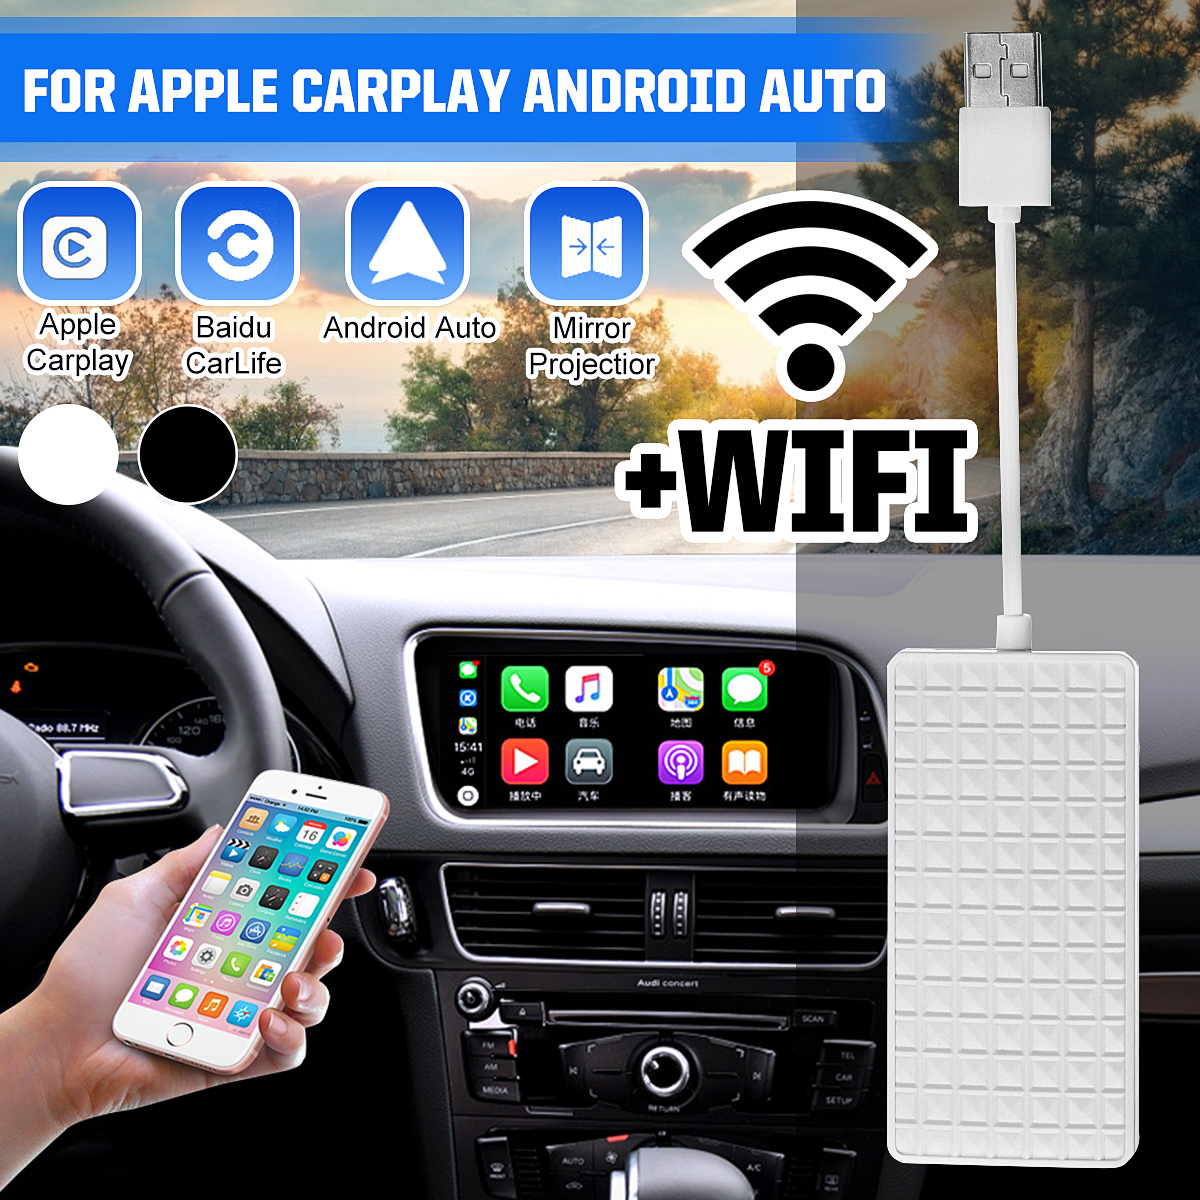 Wireless WiFi USB Dongle Smart Link For Apple CarPlay Dongle For Android Navigation Player Mini USB Carplay Stick Modules